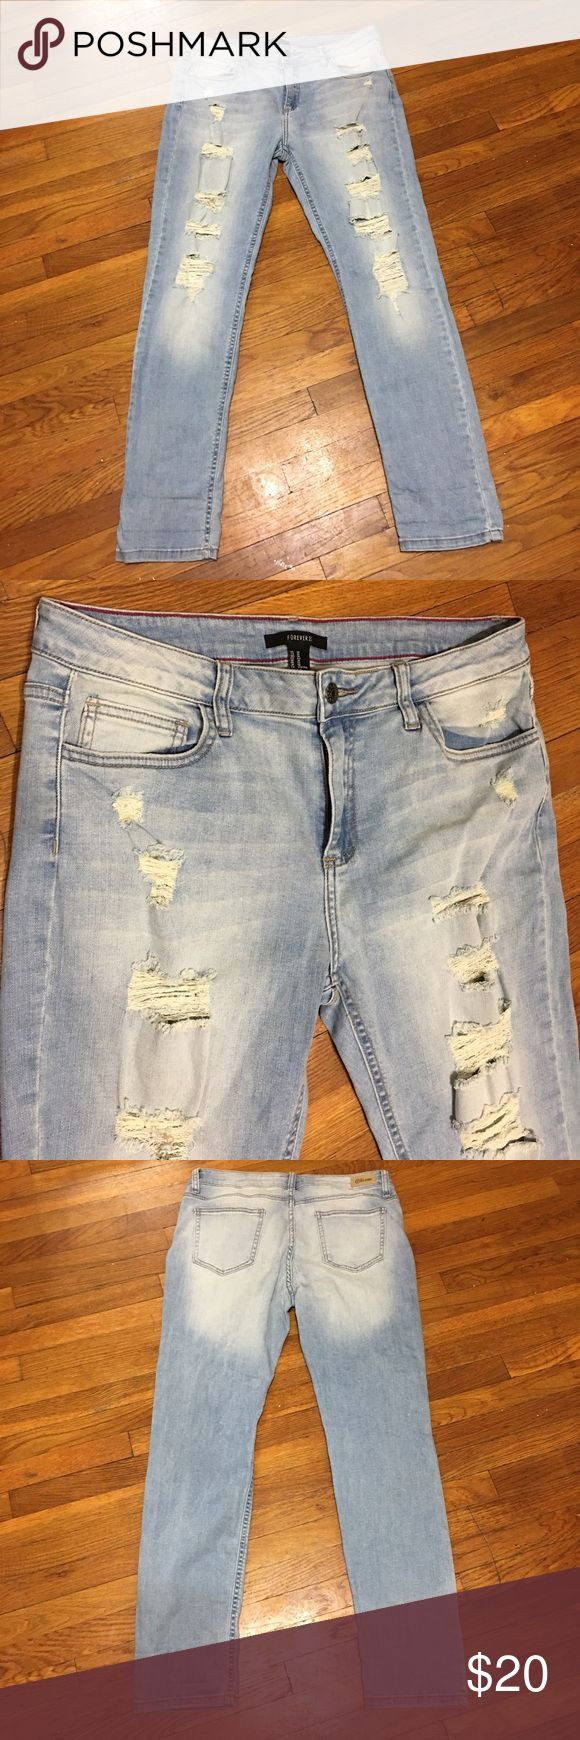 Forever 21 Ripped Women Skinny Jeans Size 30 Great Condition! 30L, front and back pockets. 👖 Forever 21 Jeans Skinny